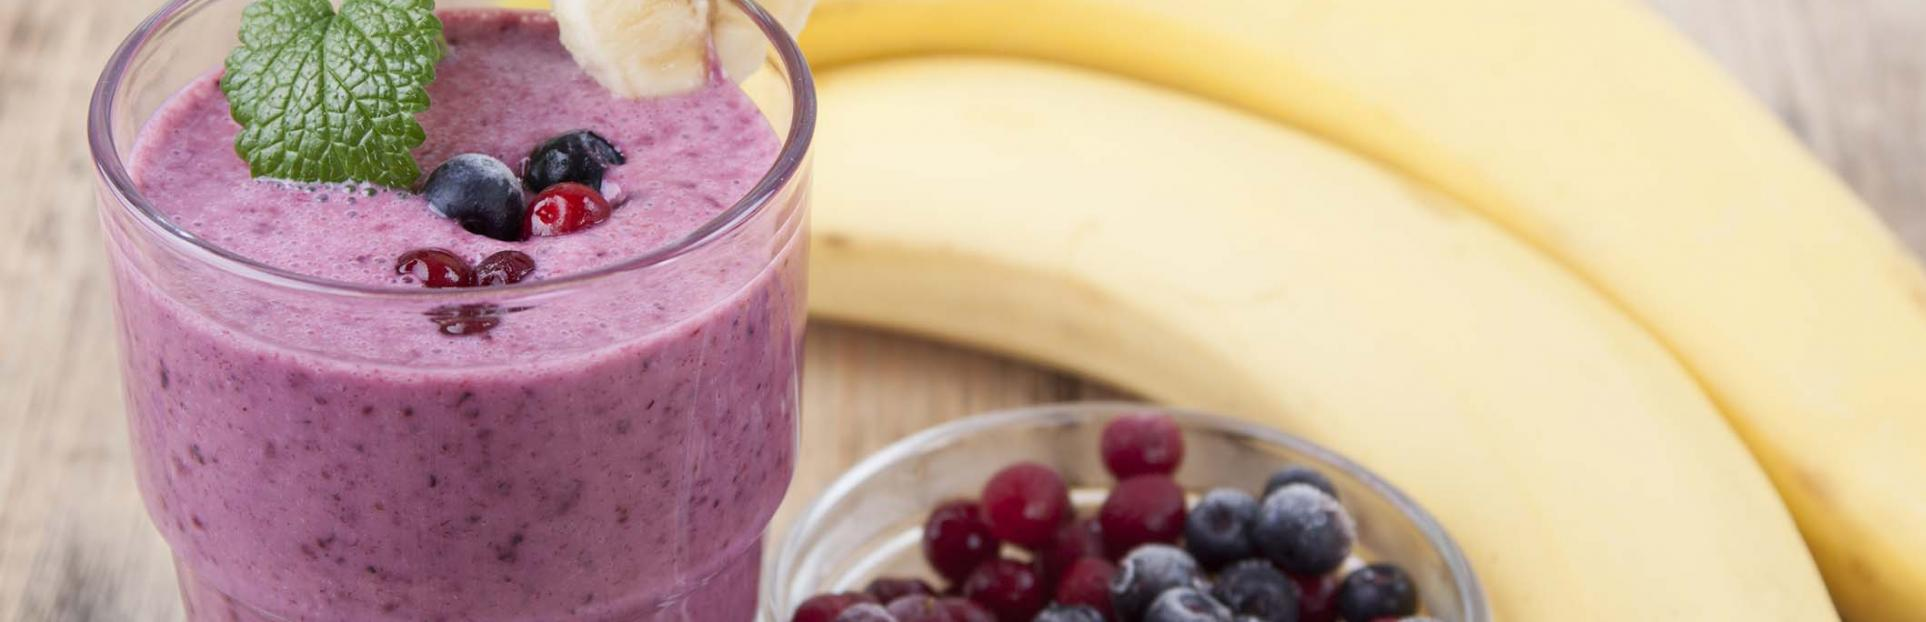 an image of a smoothie with bananas and berries